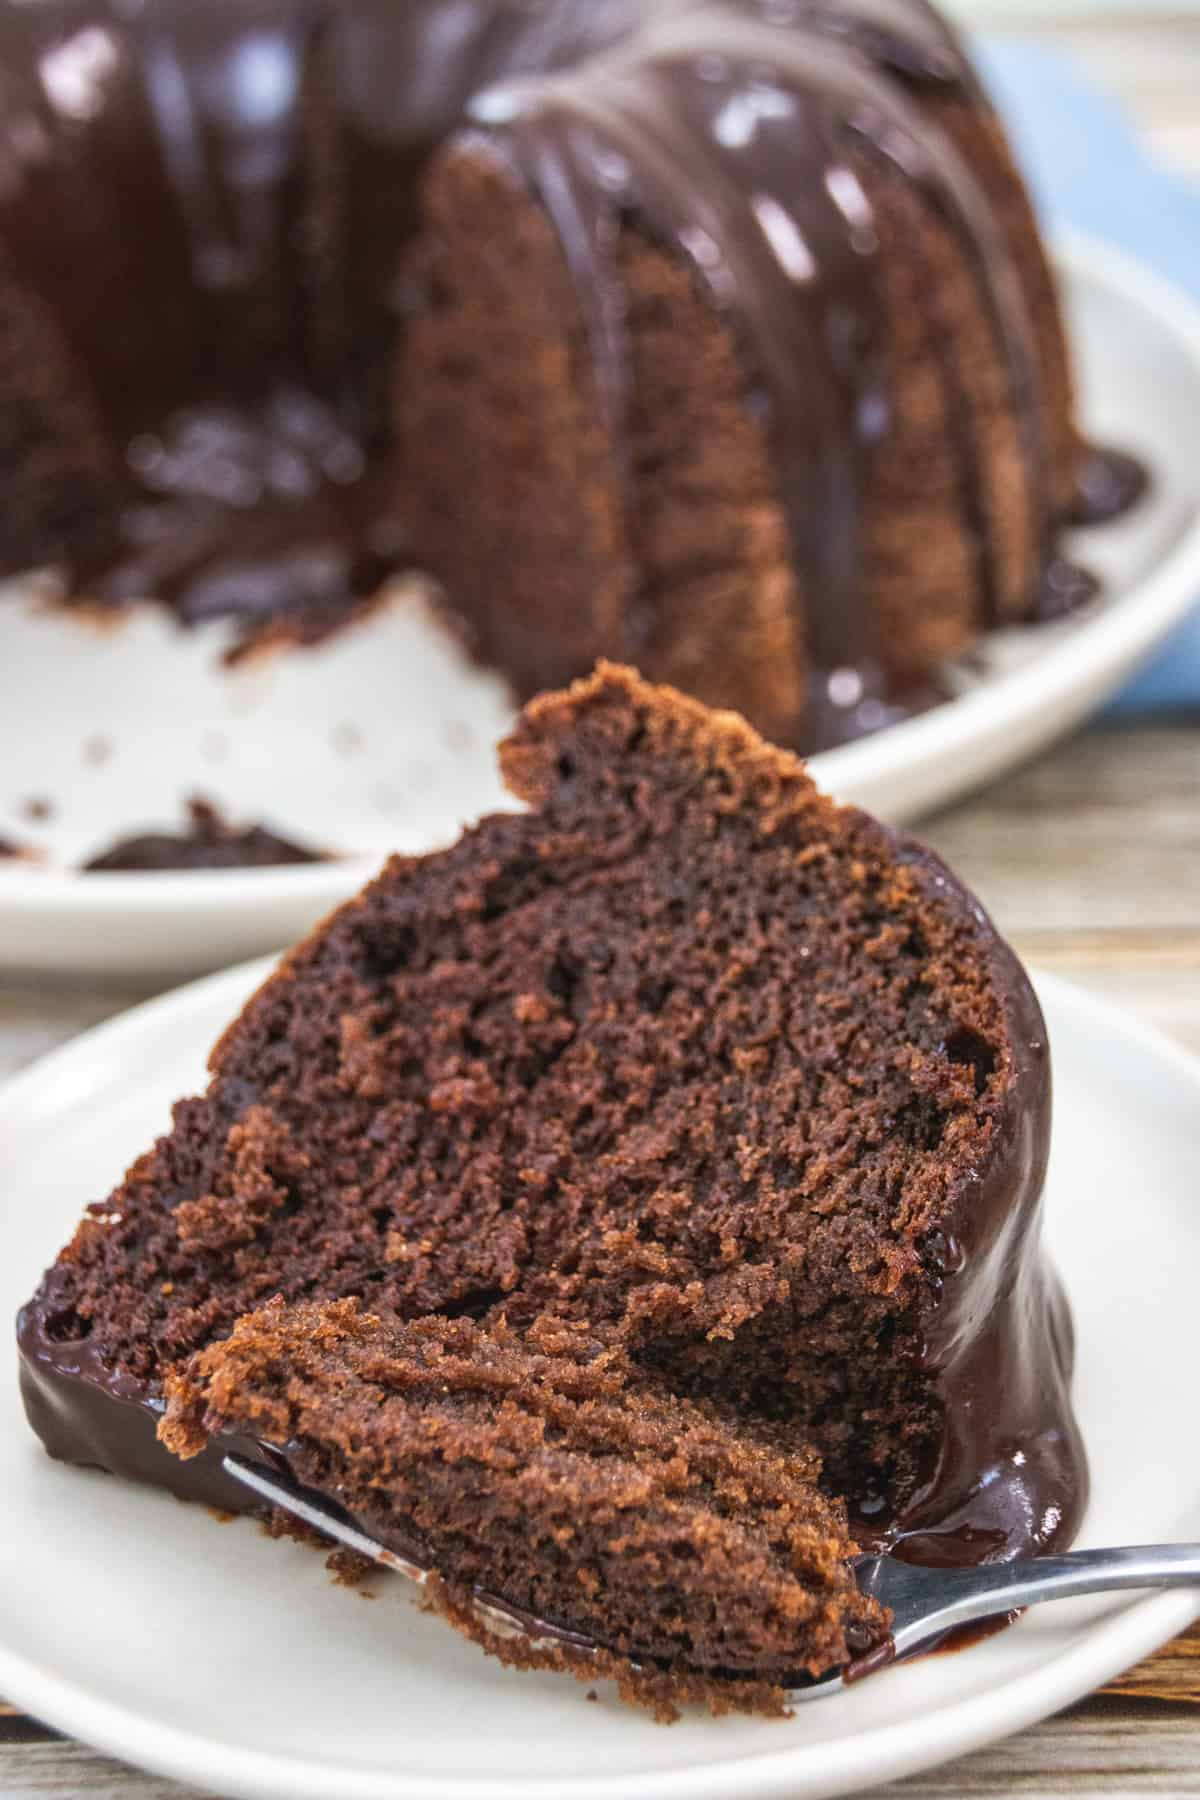 close up of chocolate cake slice on plate with fork